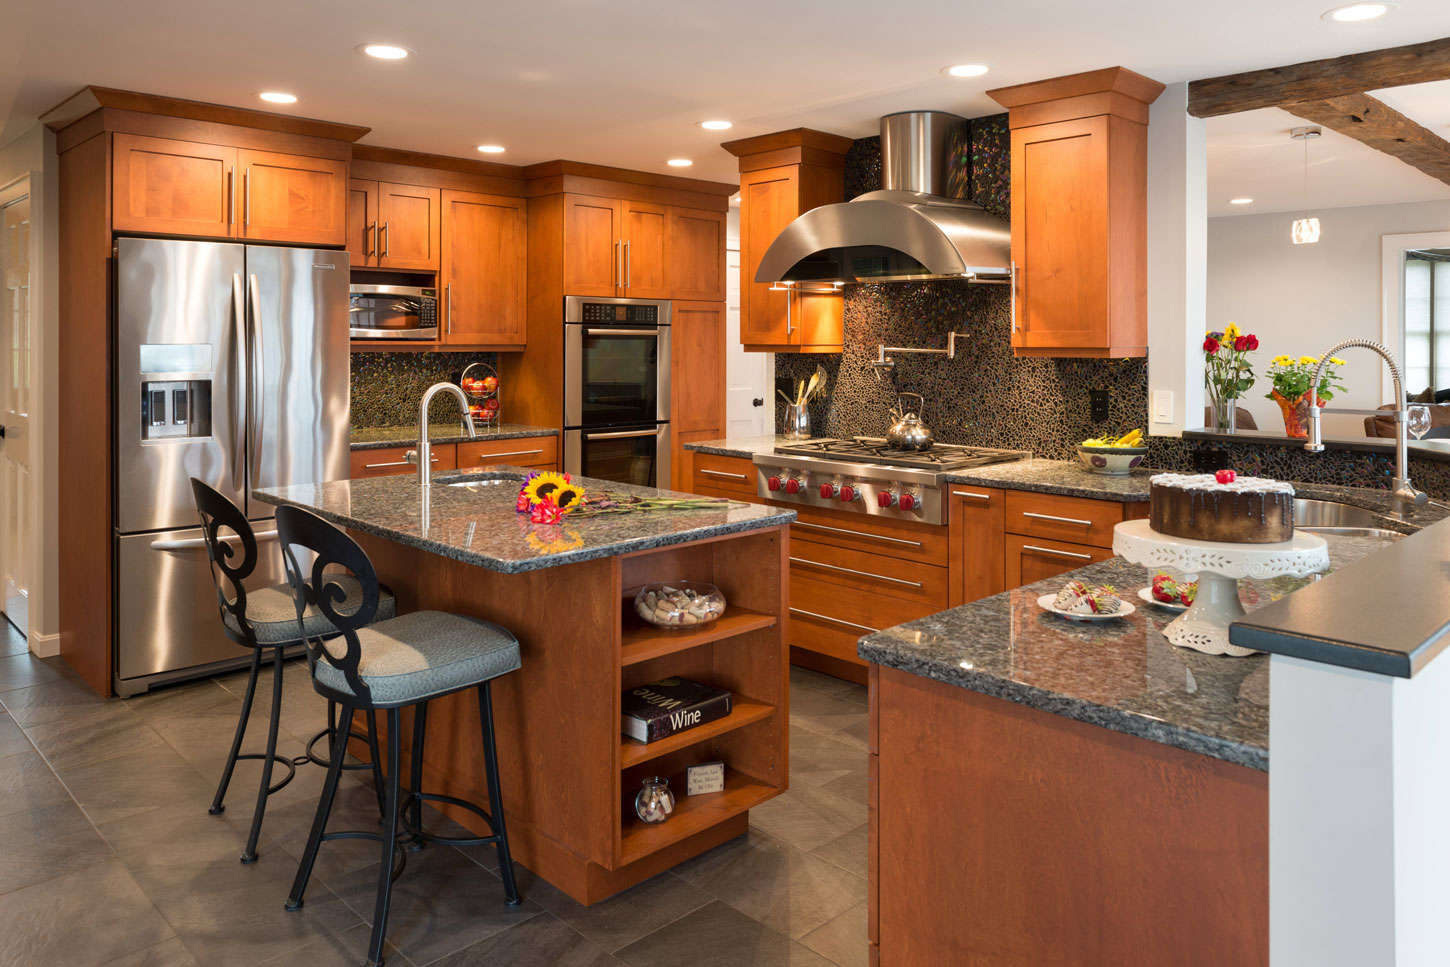 Before and After, Kitchen Remodel Weare NH